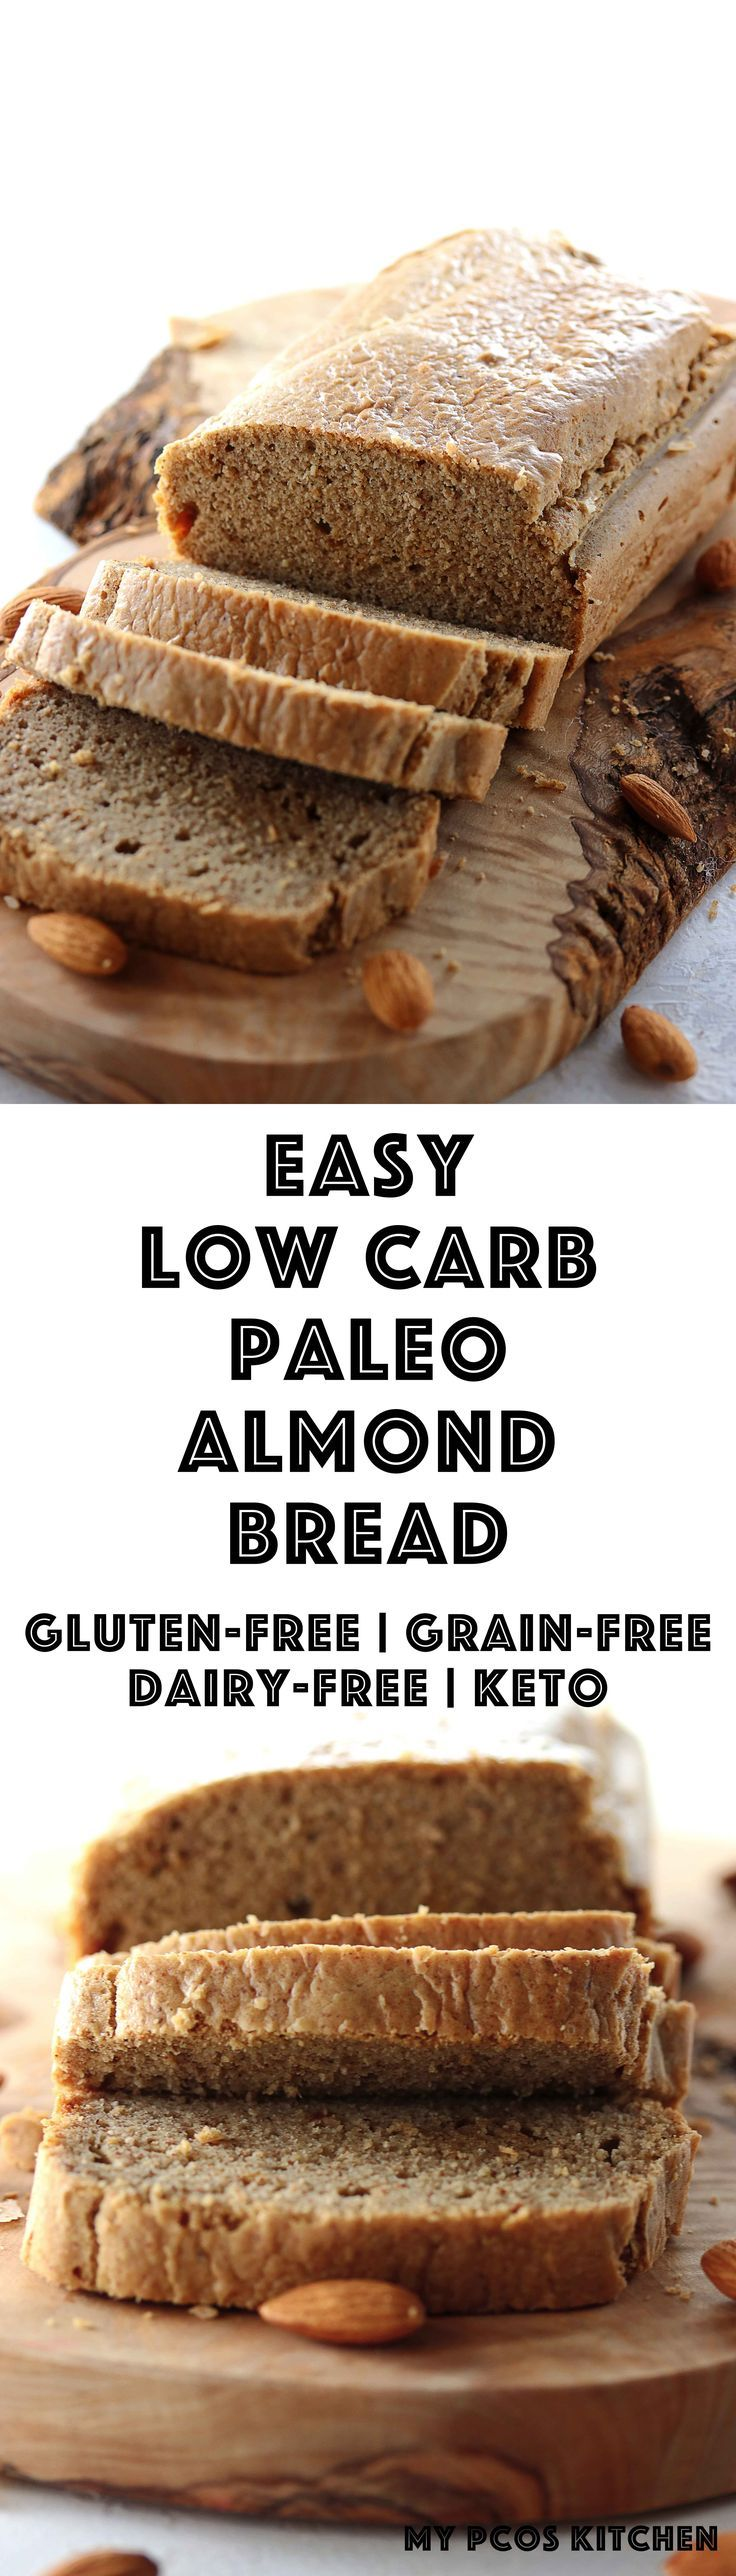 My PCOS Kitchen - Low Carb Paleo Bread with Almond Butter- A gluten-free, starch-free and keto bread made with creamy almond butter. #keto #paleo #bread #glutenfree via @mypcoskitchen